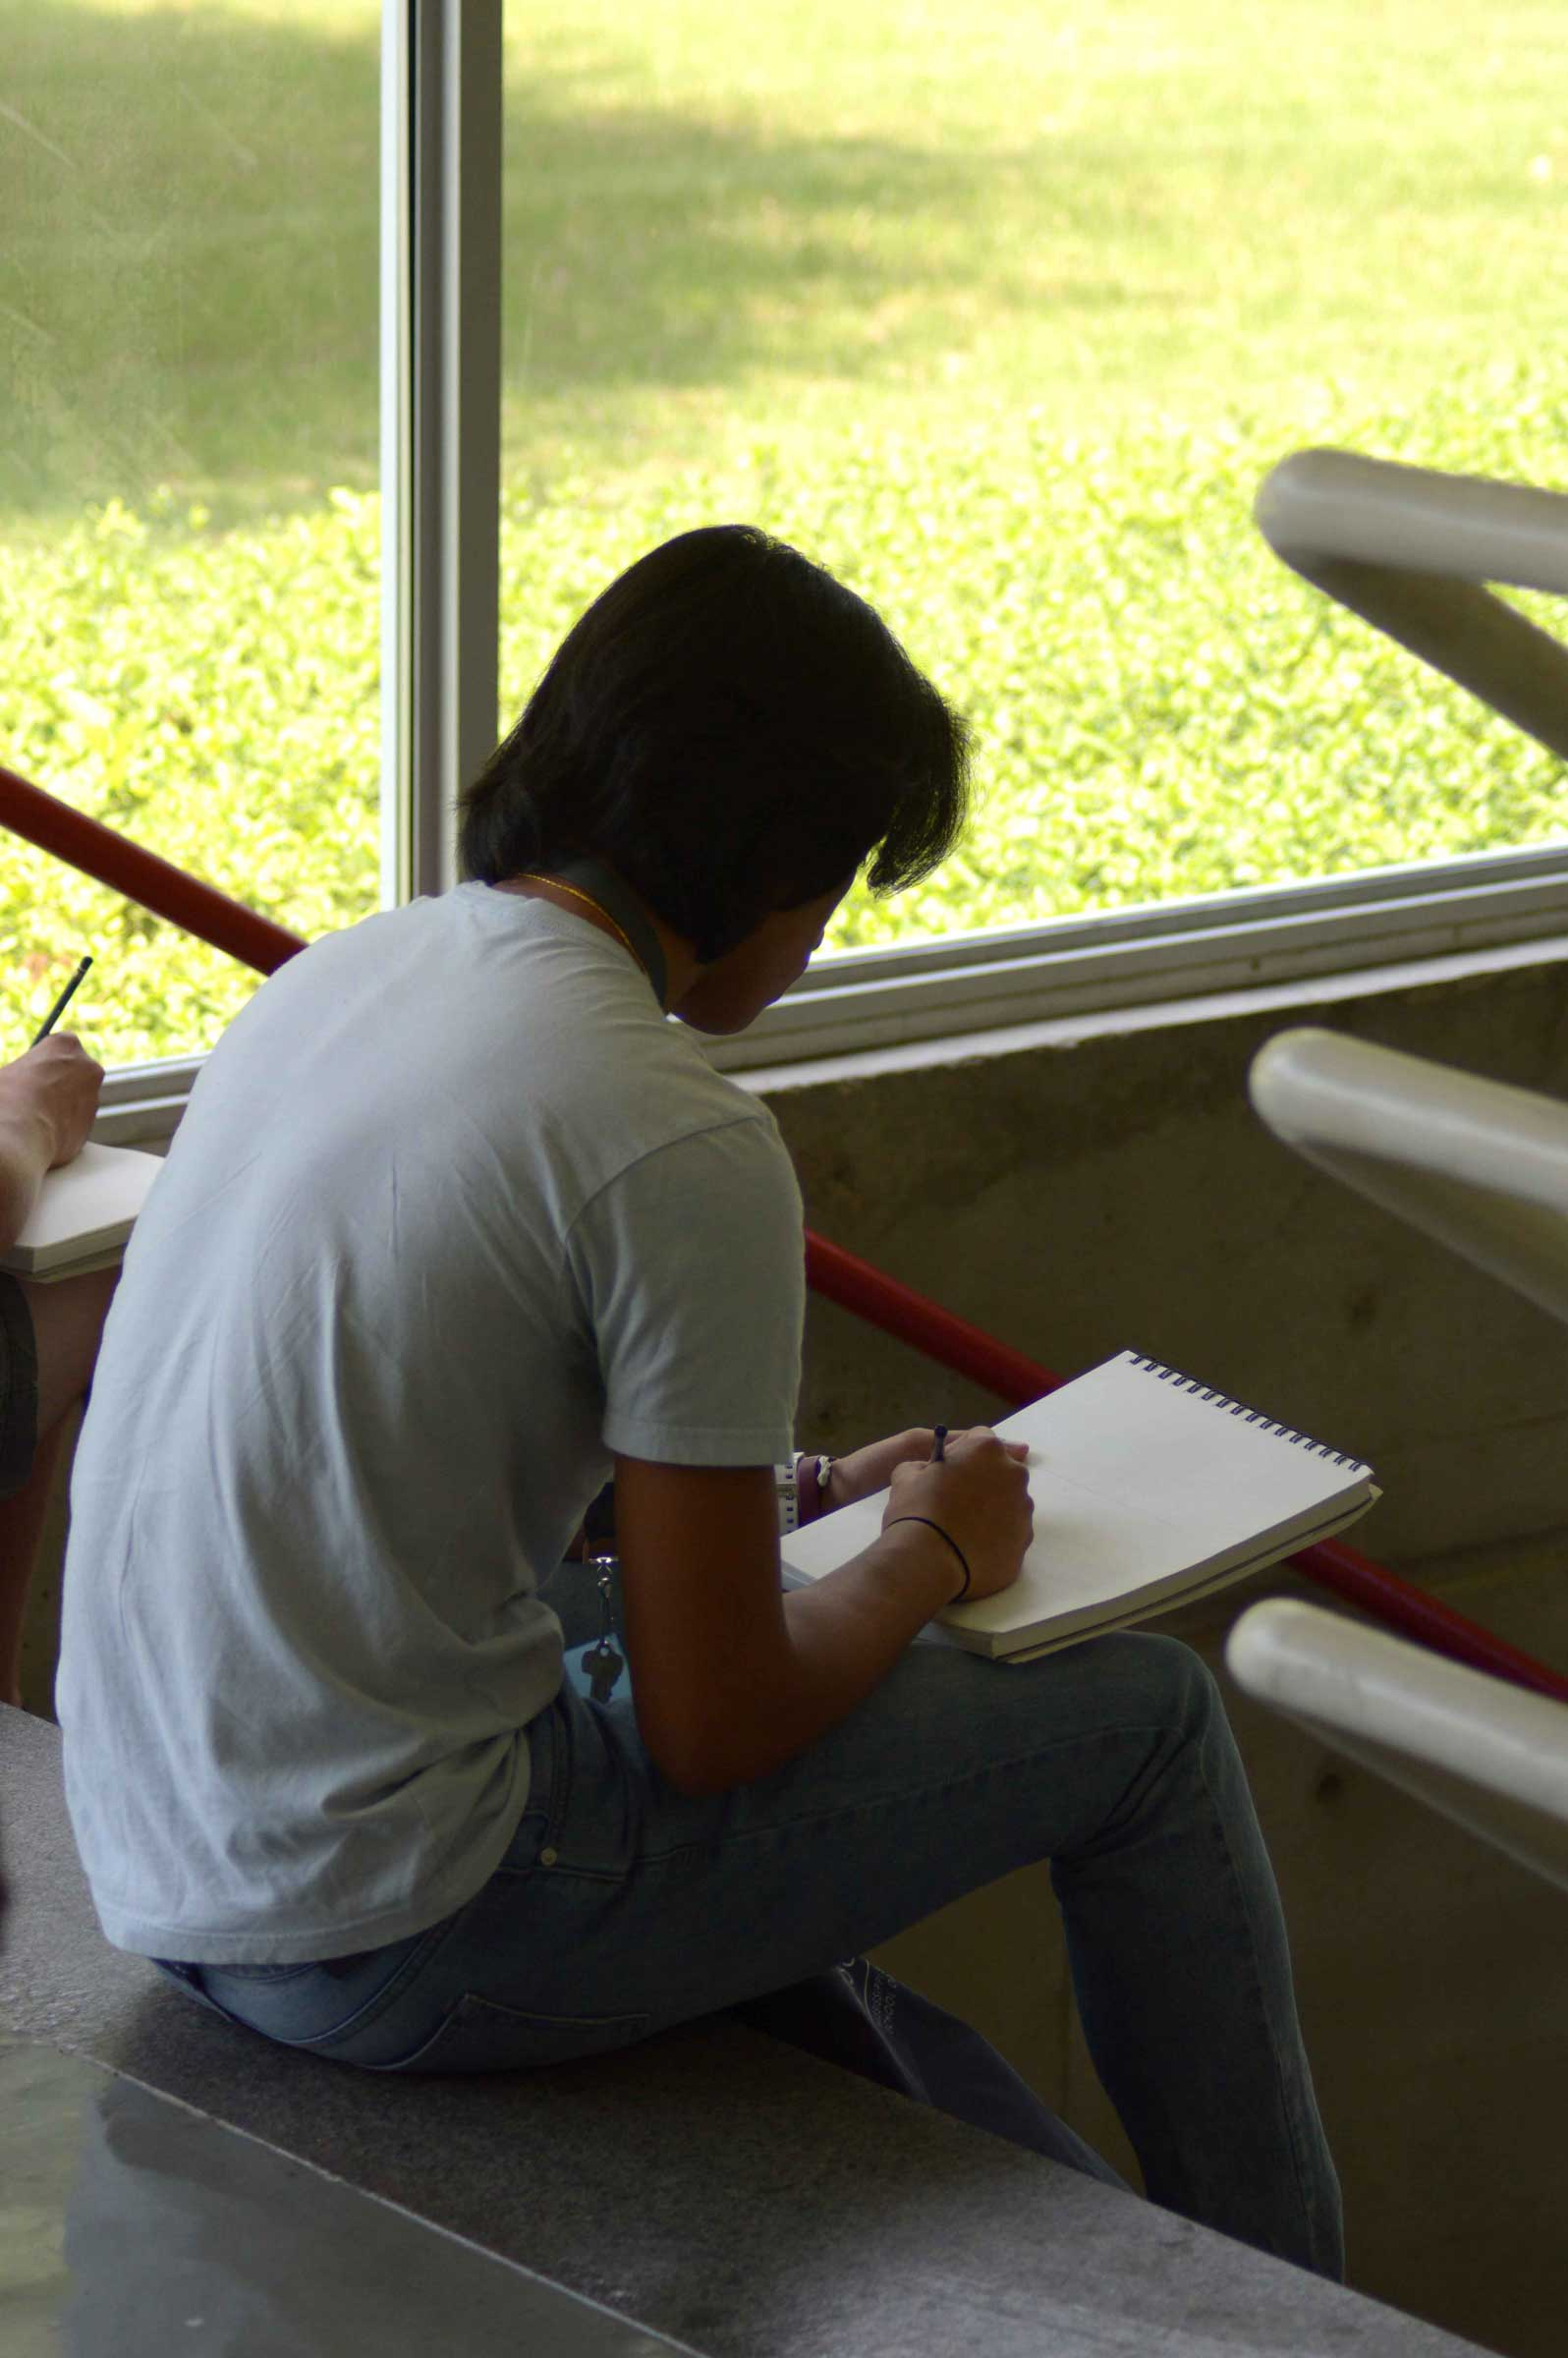 Student sitting on stairs drawing